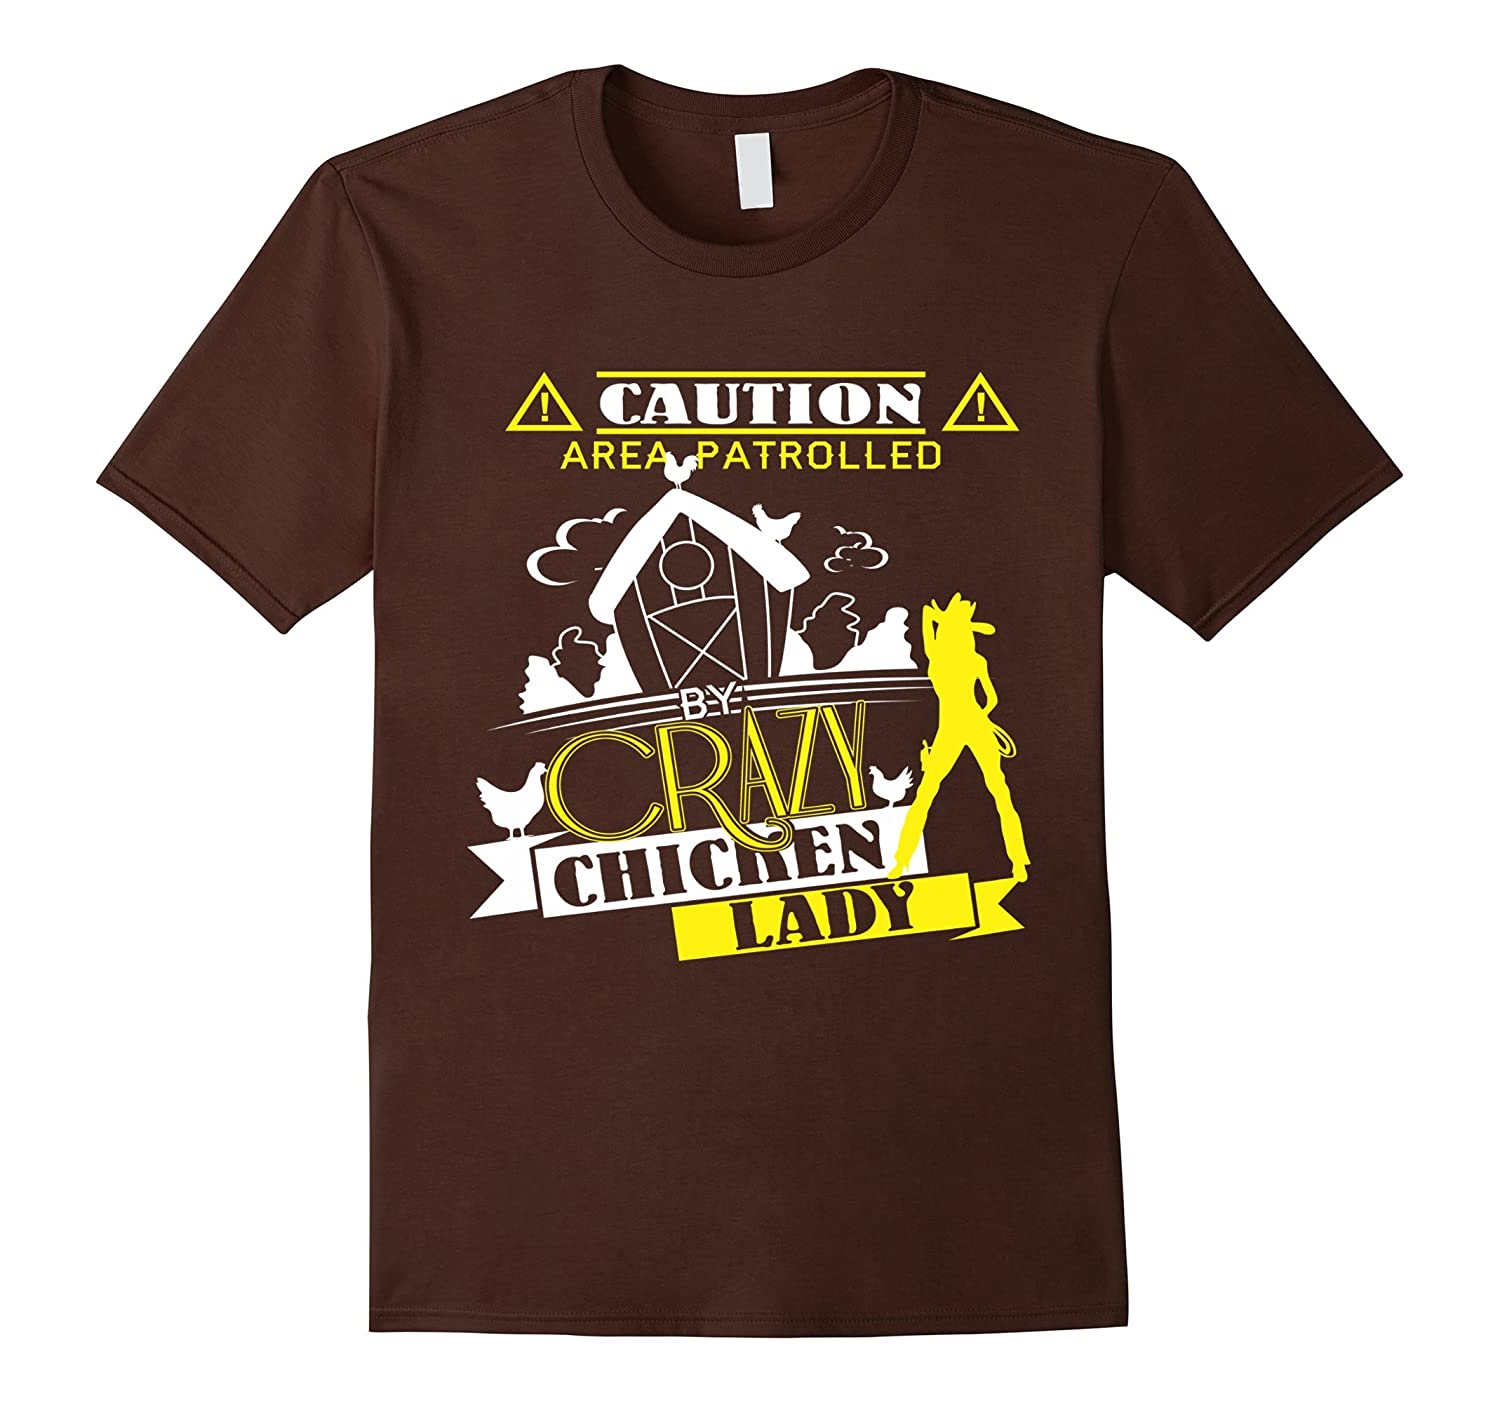 Area Patrolled Crazy Chicken Lady Gift Shirts For Lovers